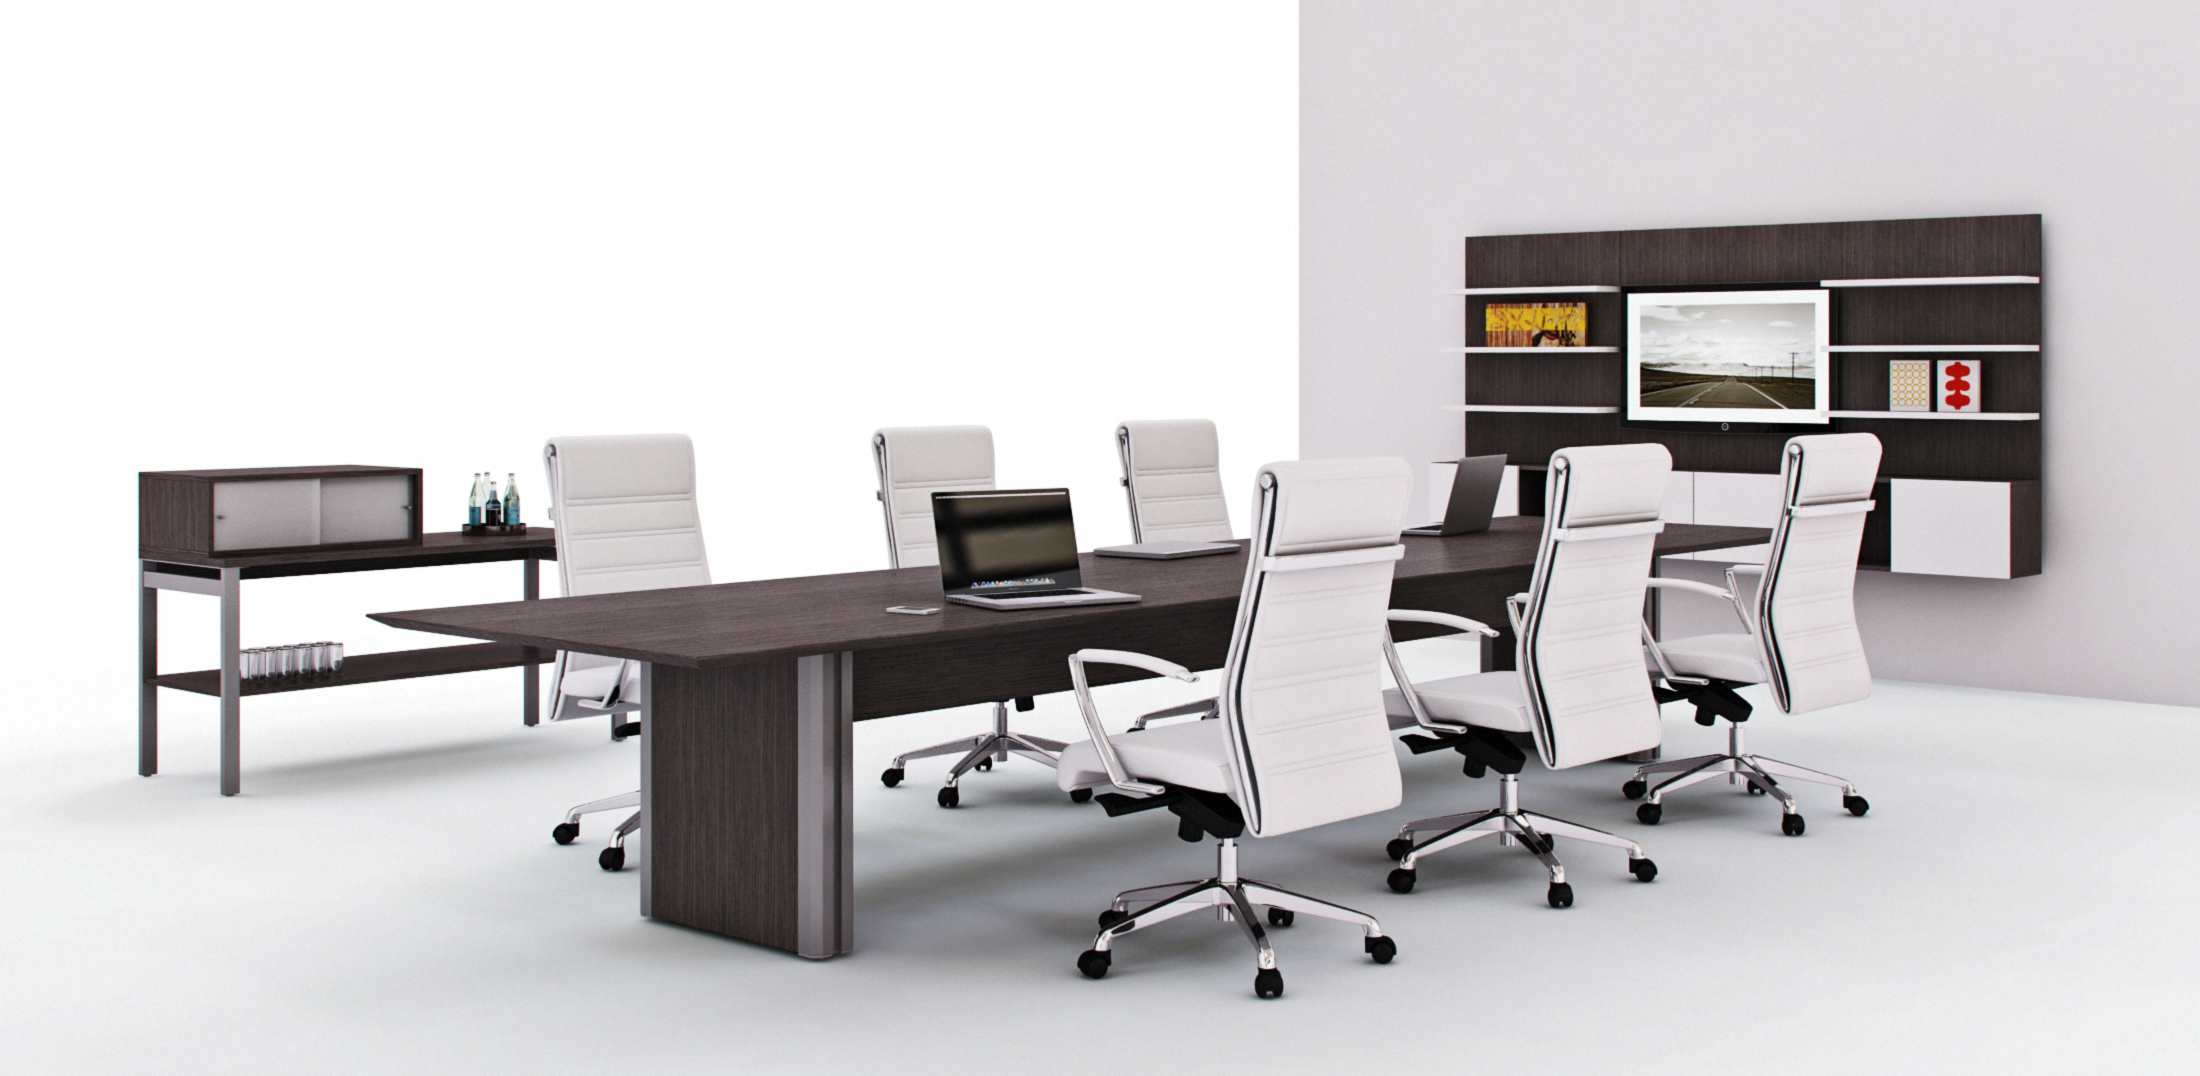 First fice Introduces the edge and Intermix at NeoCon 2012